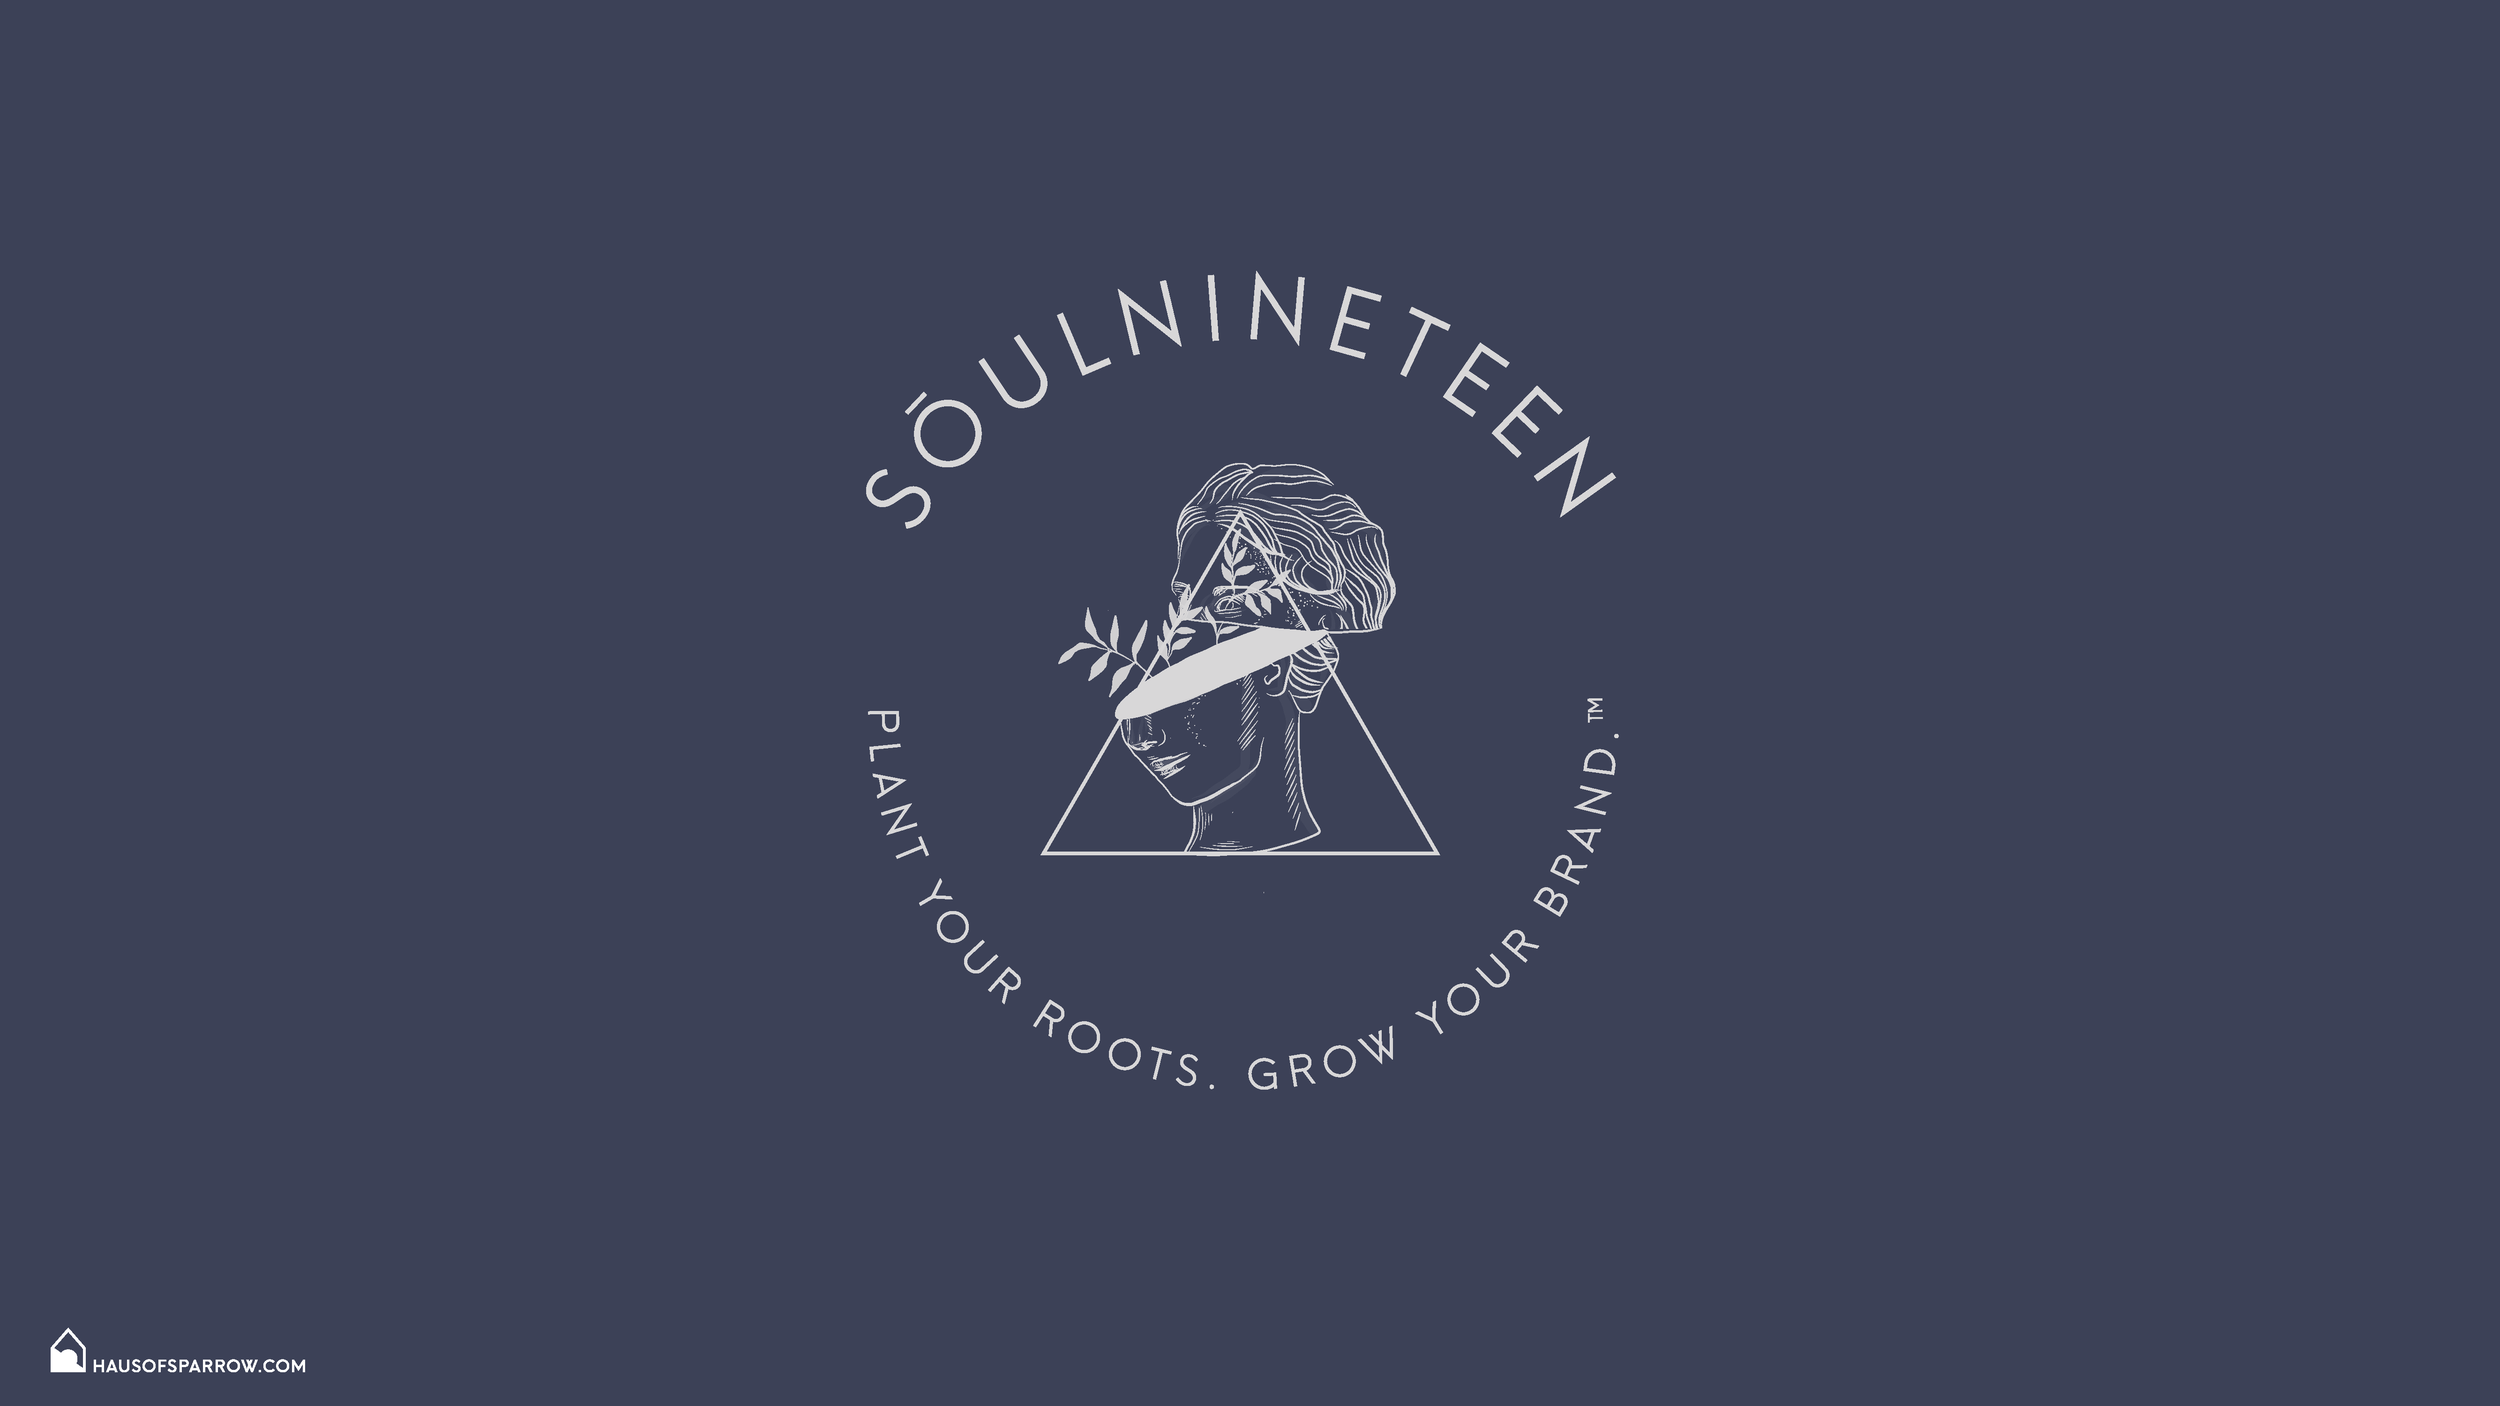 soulnineteen_brand_guides_2019_Page_01.png